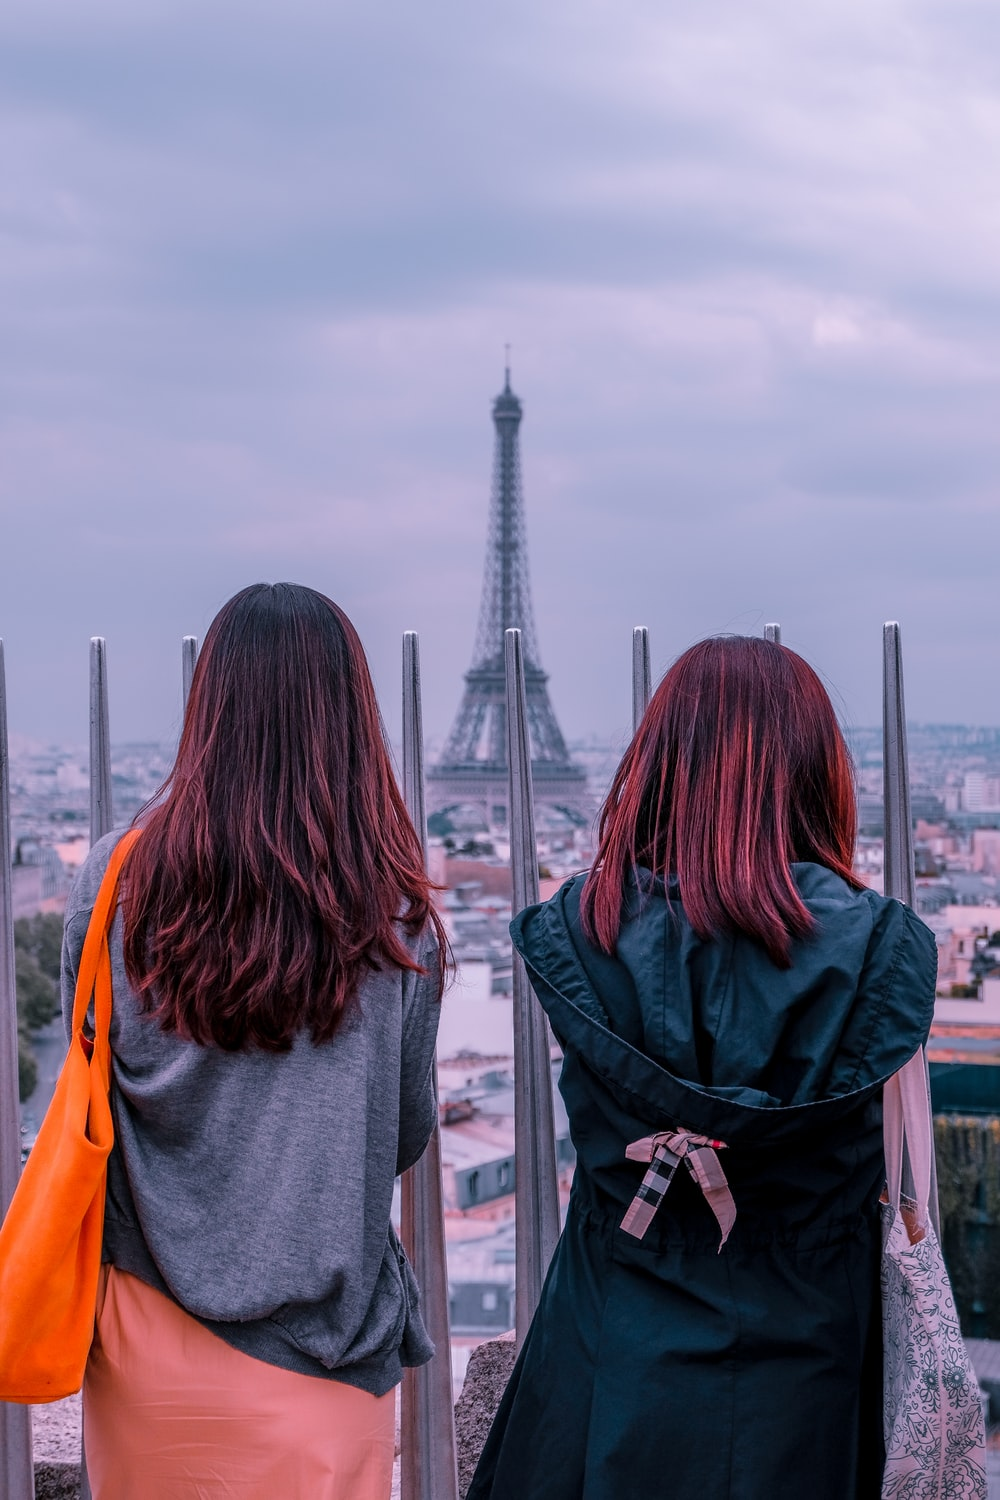 two woman standing near outdoor facing on Eiffel Tower during daytime